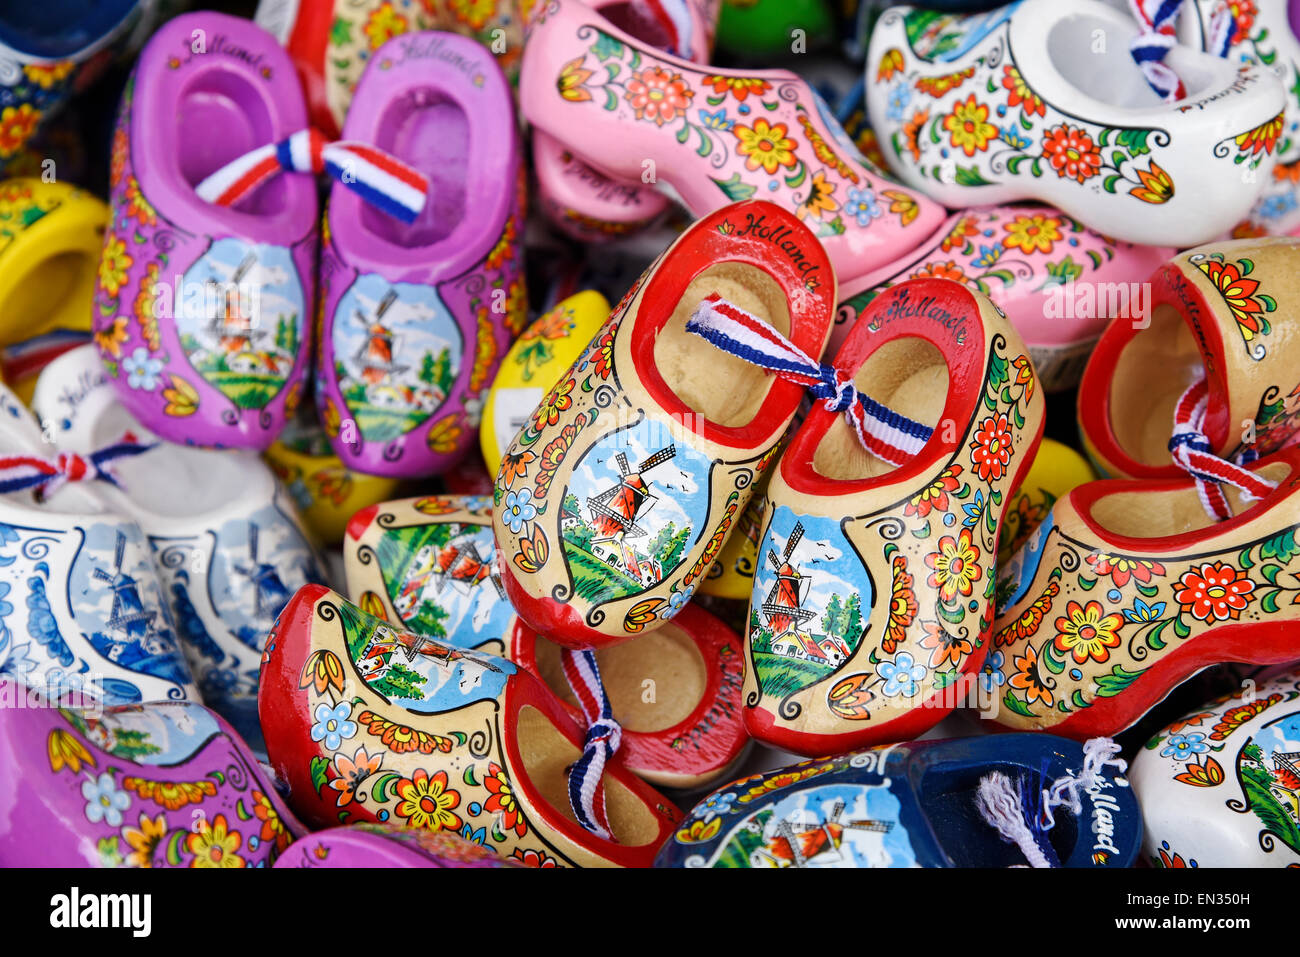 Colourful wooden Dutch shoes with windmill motif, souvenirs, province of North Holland, The Netherlands - Stock Image